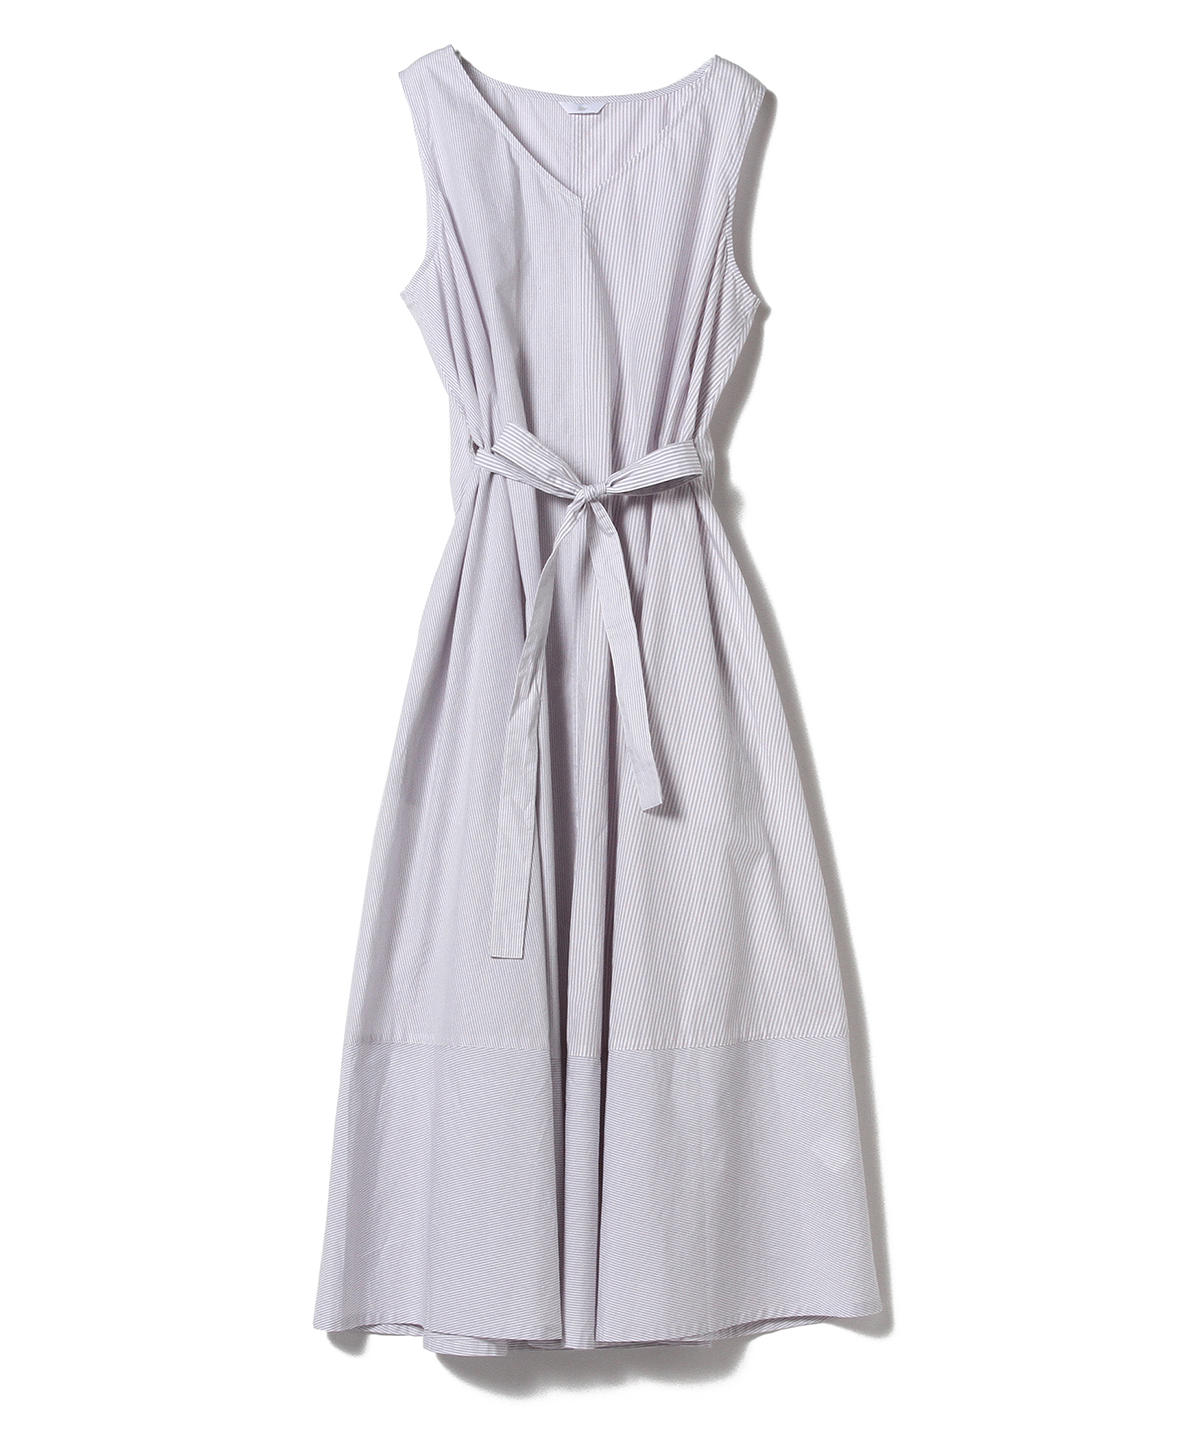 LYNNE Cotton Tie Dress